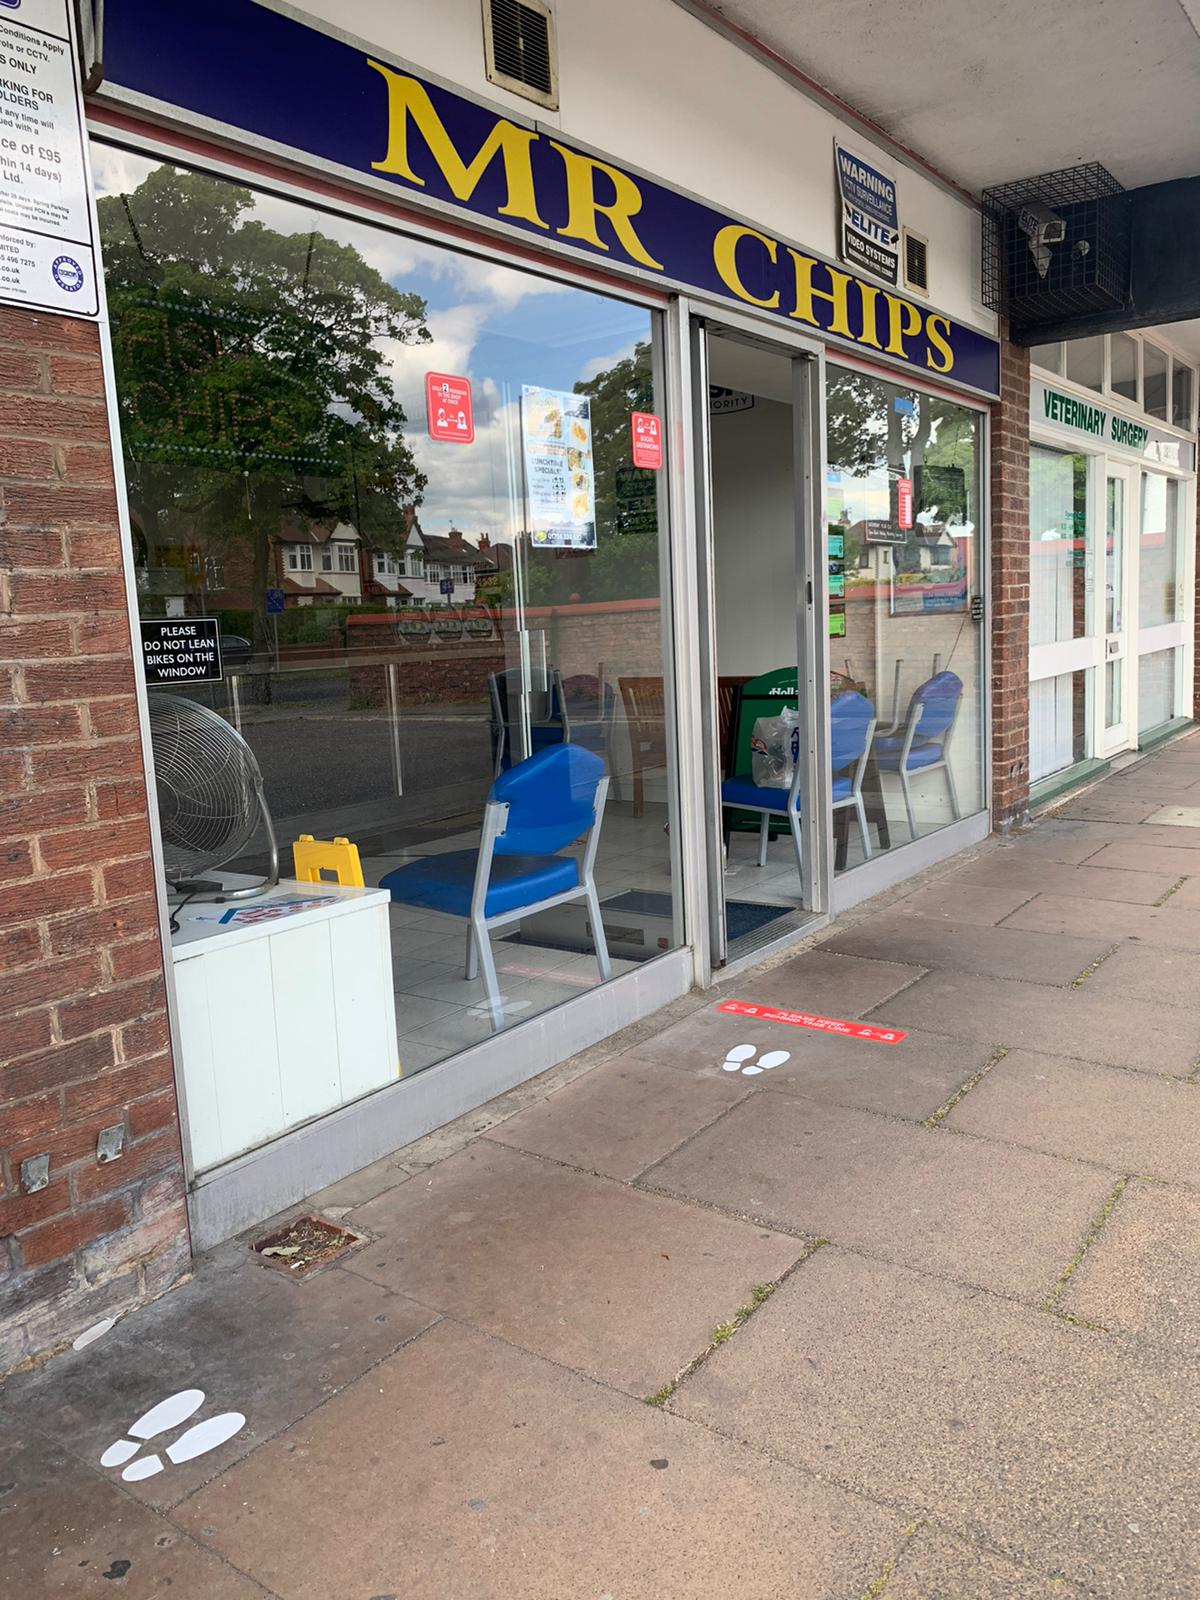 New social distancing signs created by Southport firm Magnetic Activation outside Mr Chips chippy in Churchtown in Southport